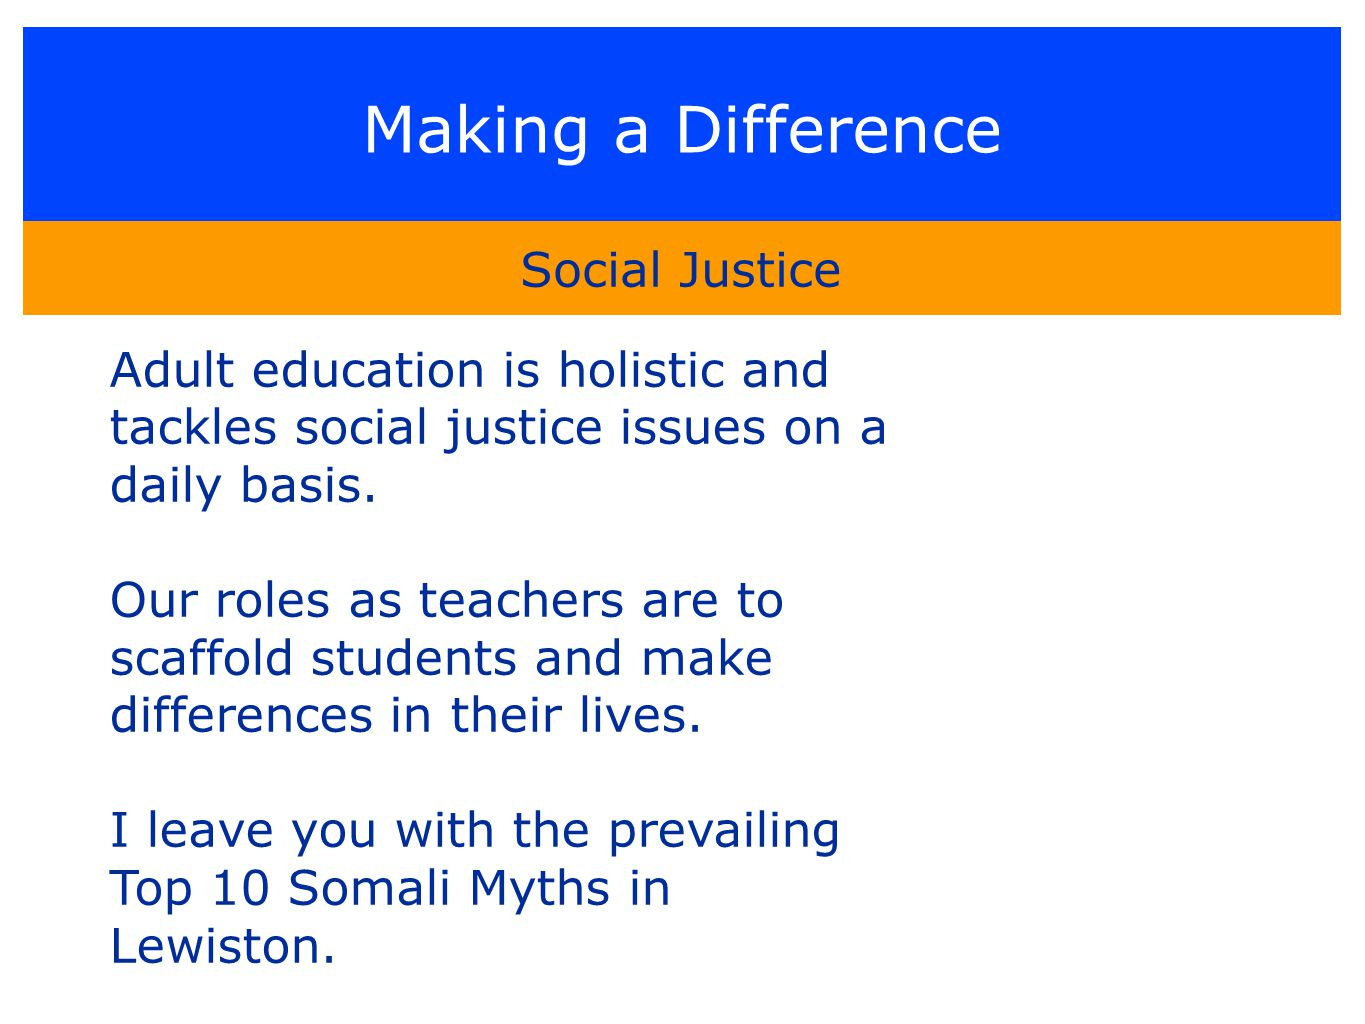 Making a Difference Social Justice Adult education is holistic and tackles social justice issues on a daily basis.